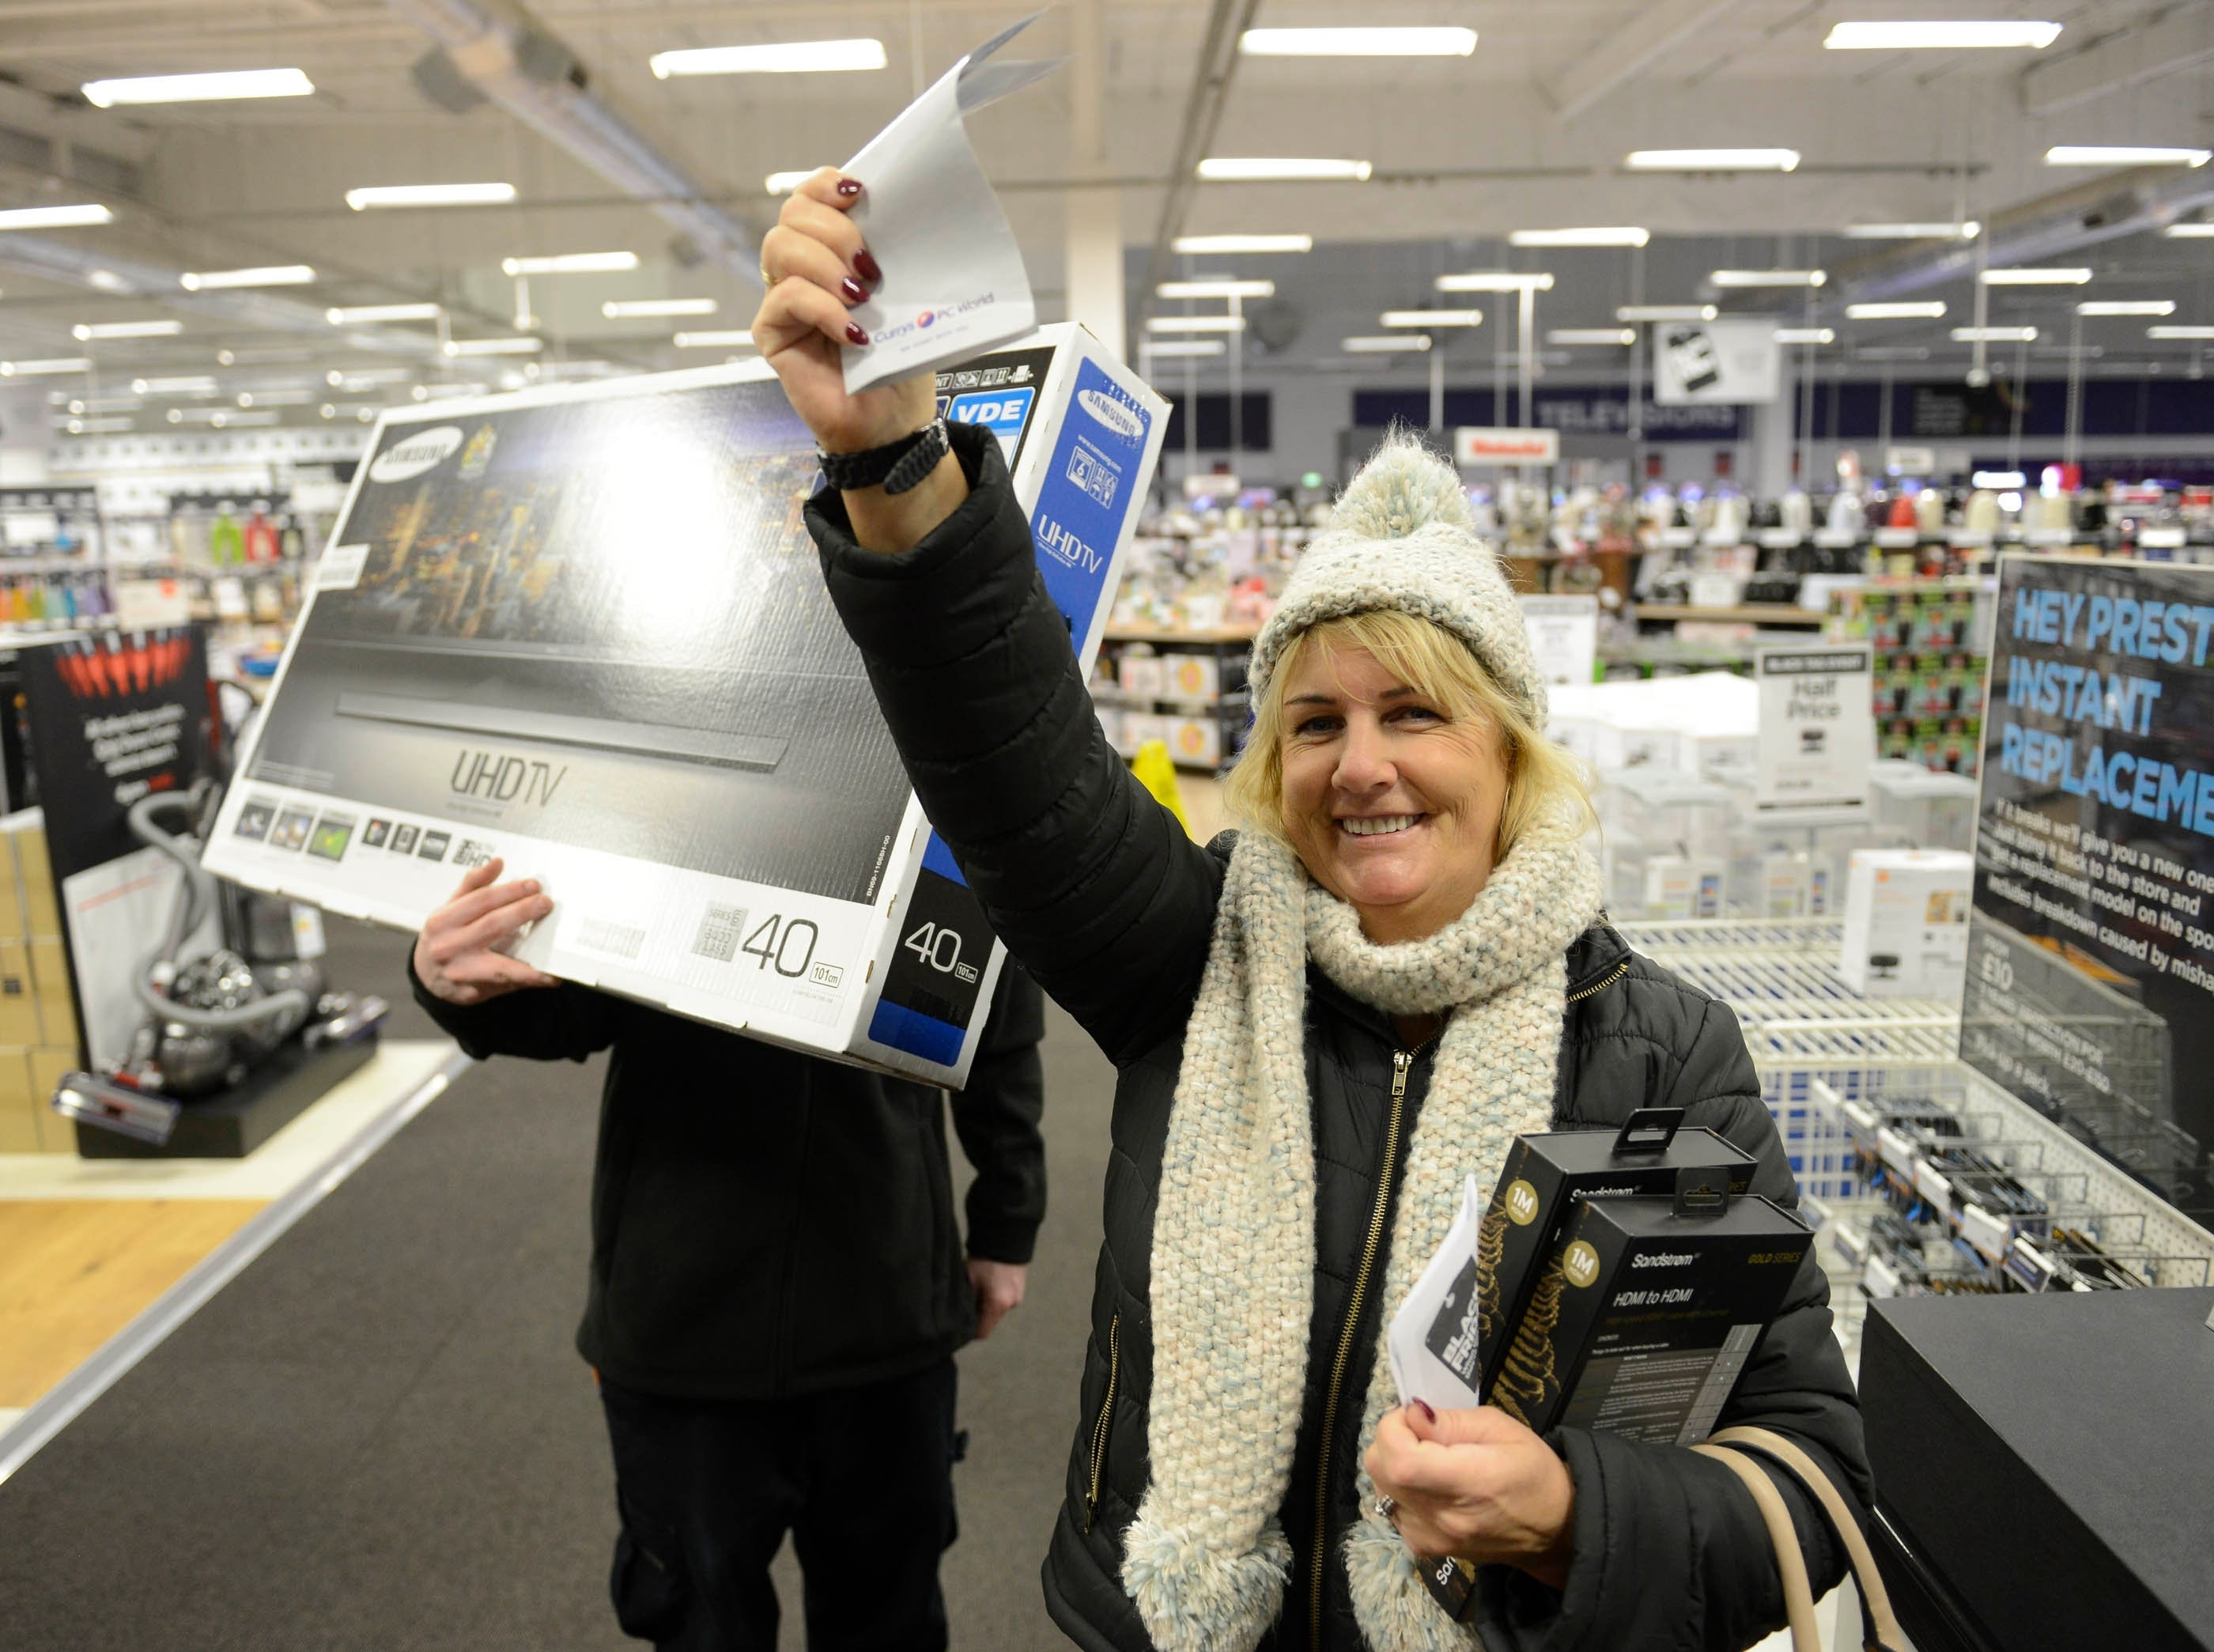 Jacqueline Wilson, 54, from Erskine, one of the first customers in the shop, bags a bargain at Currys PC World, intu Braehead, Glasgow, for Black Friday sales, November 27, 2015. Large crowds did not materialise despite the bargains on offer with very few shoppers being in the store shortly after opening at 6am.